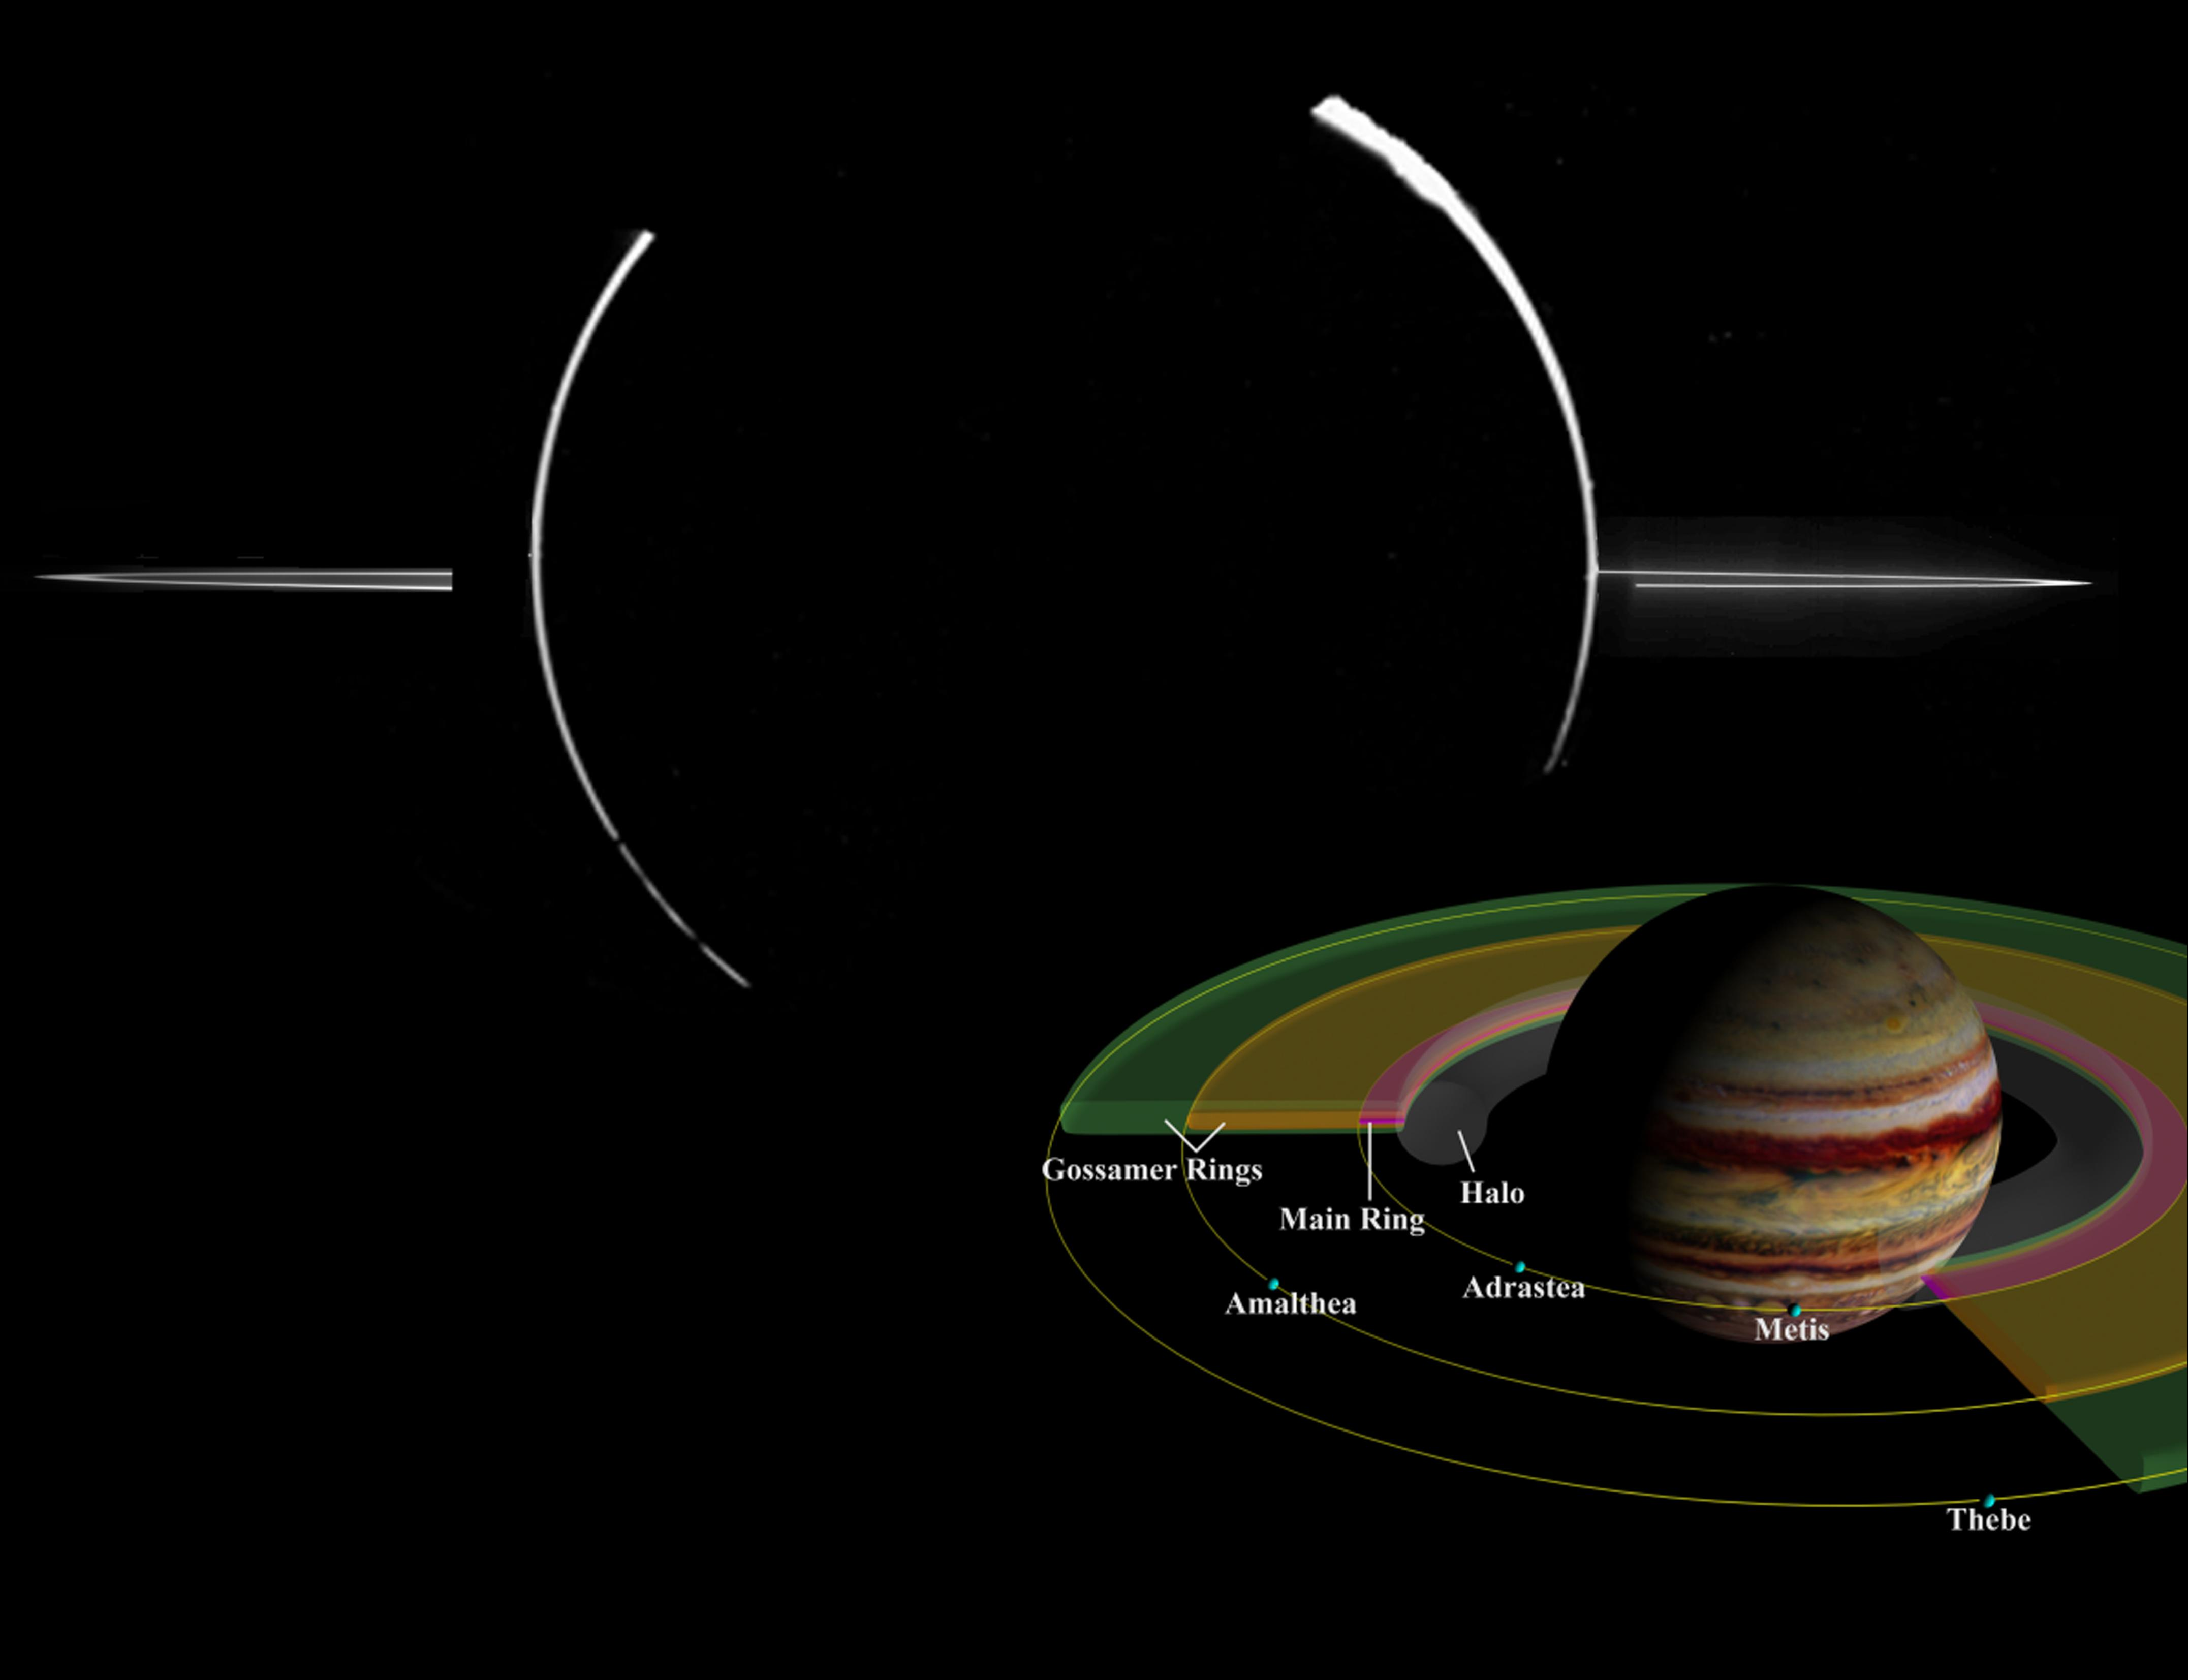 APOD: Earth and Moon from Saturn (2013 Jul 22) - Page 3 ...